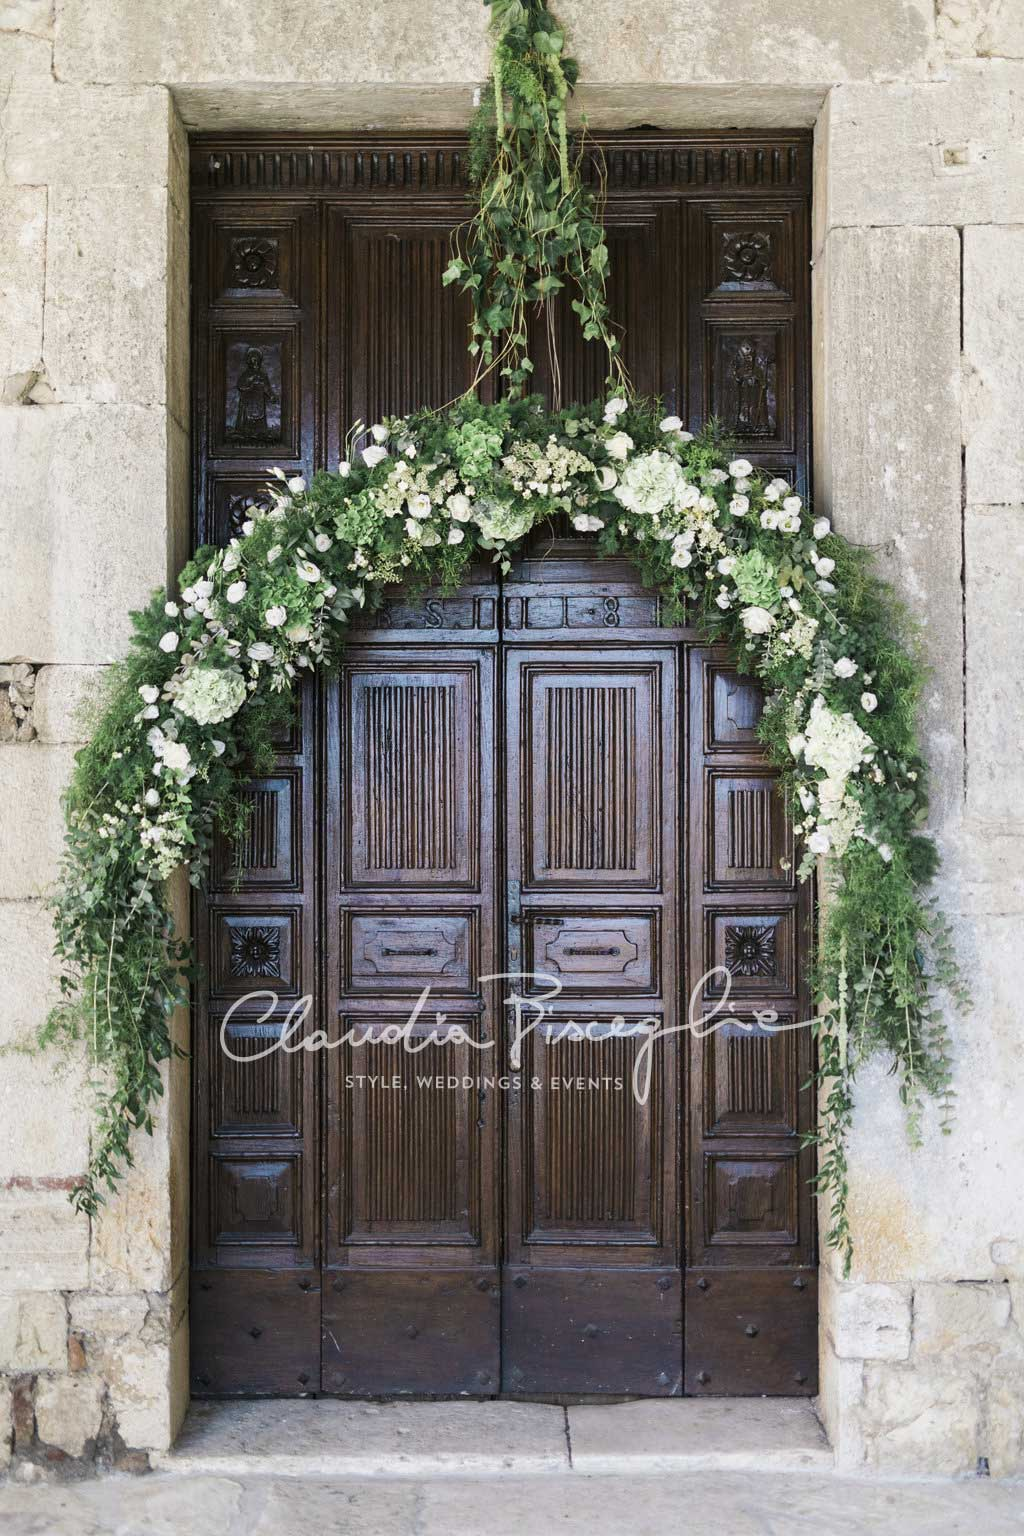 C-Church-decoration-wreath-green-flower-